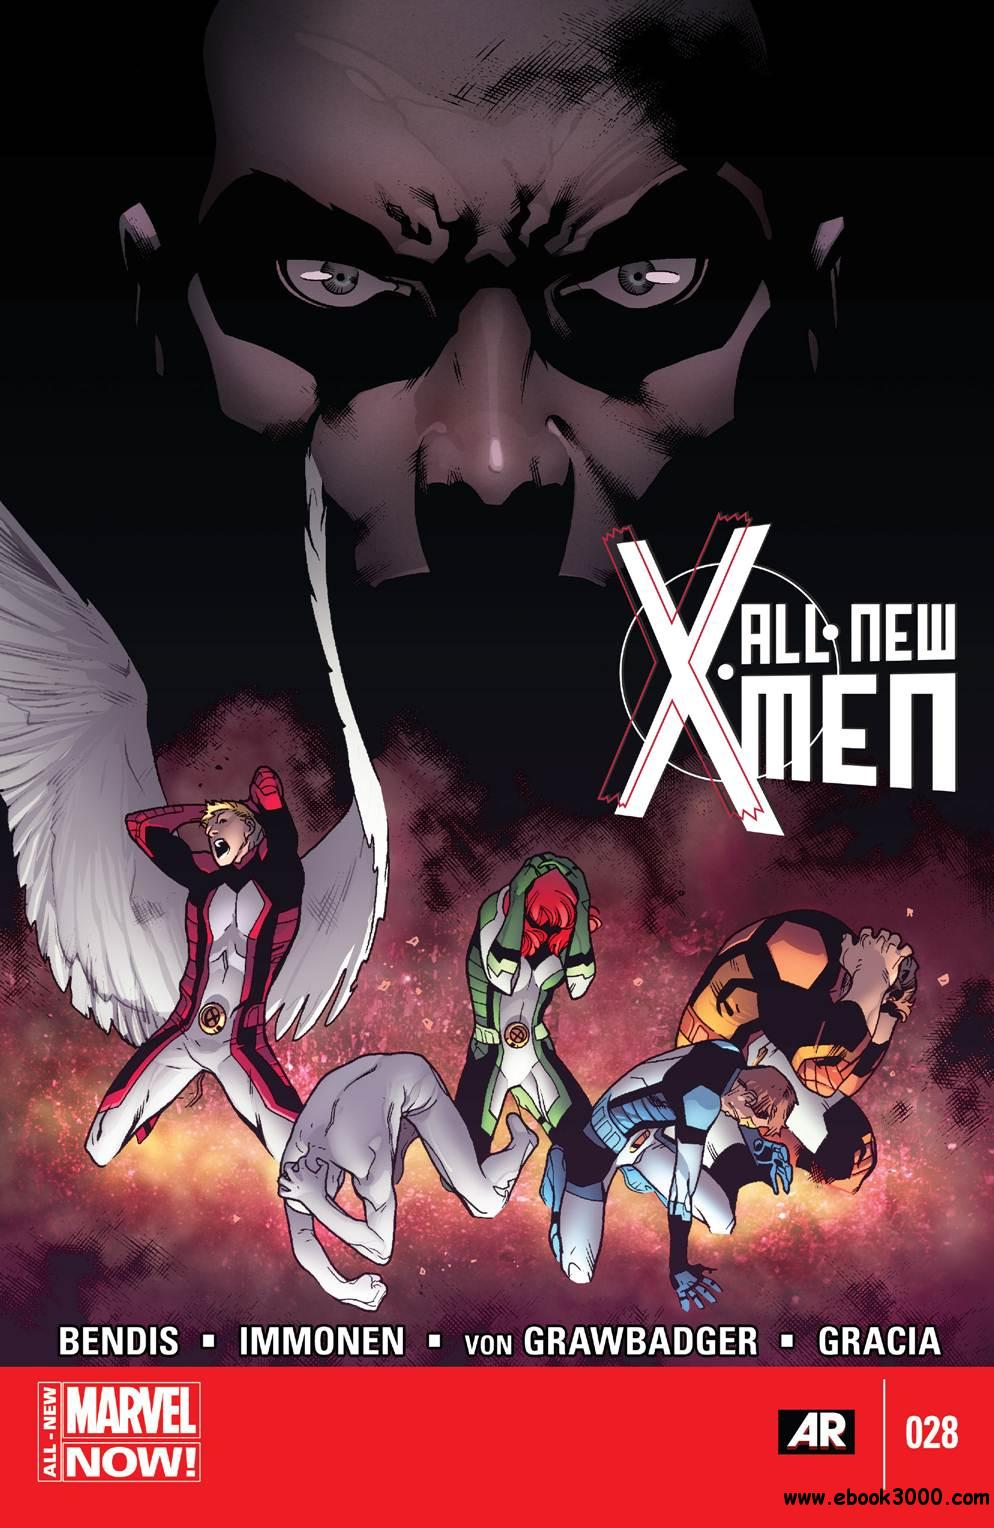 All-New X-Men 028 (2014) free download